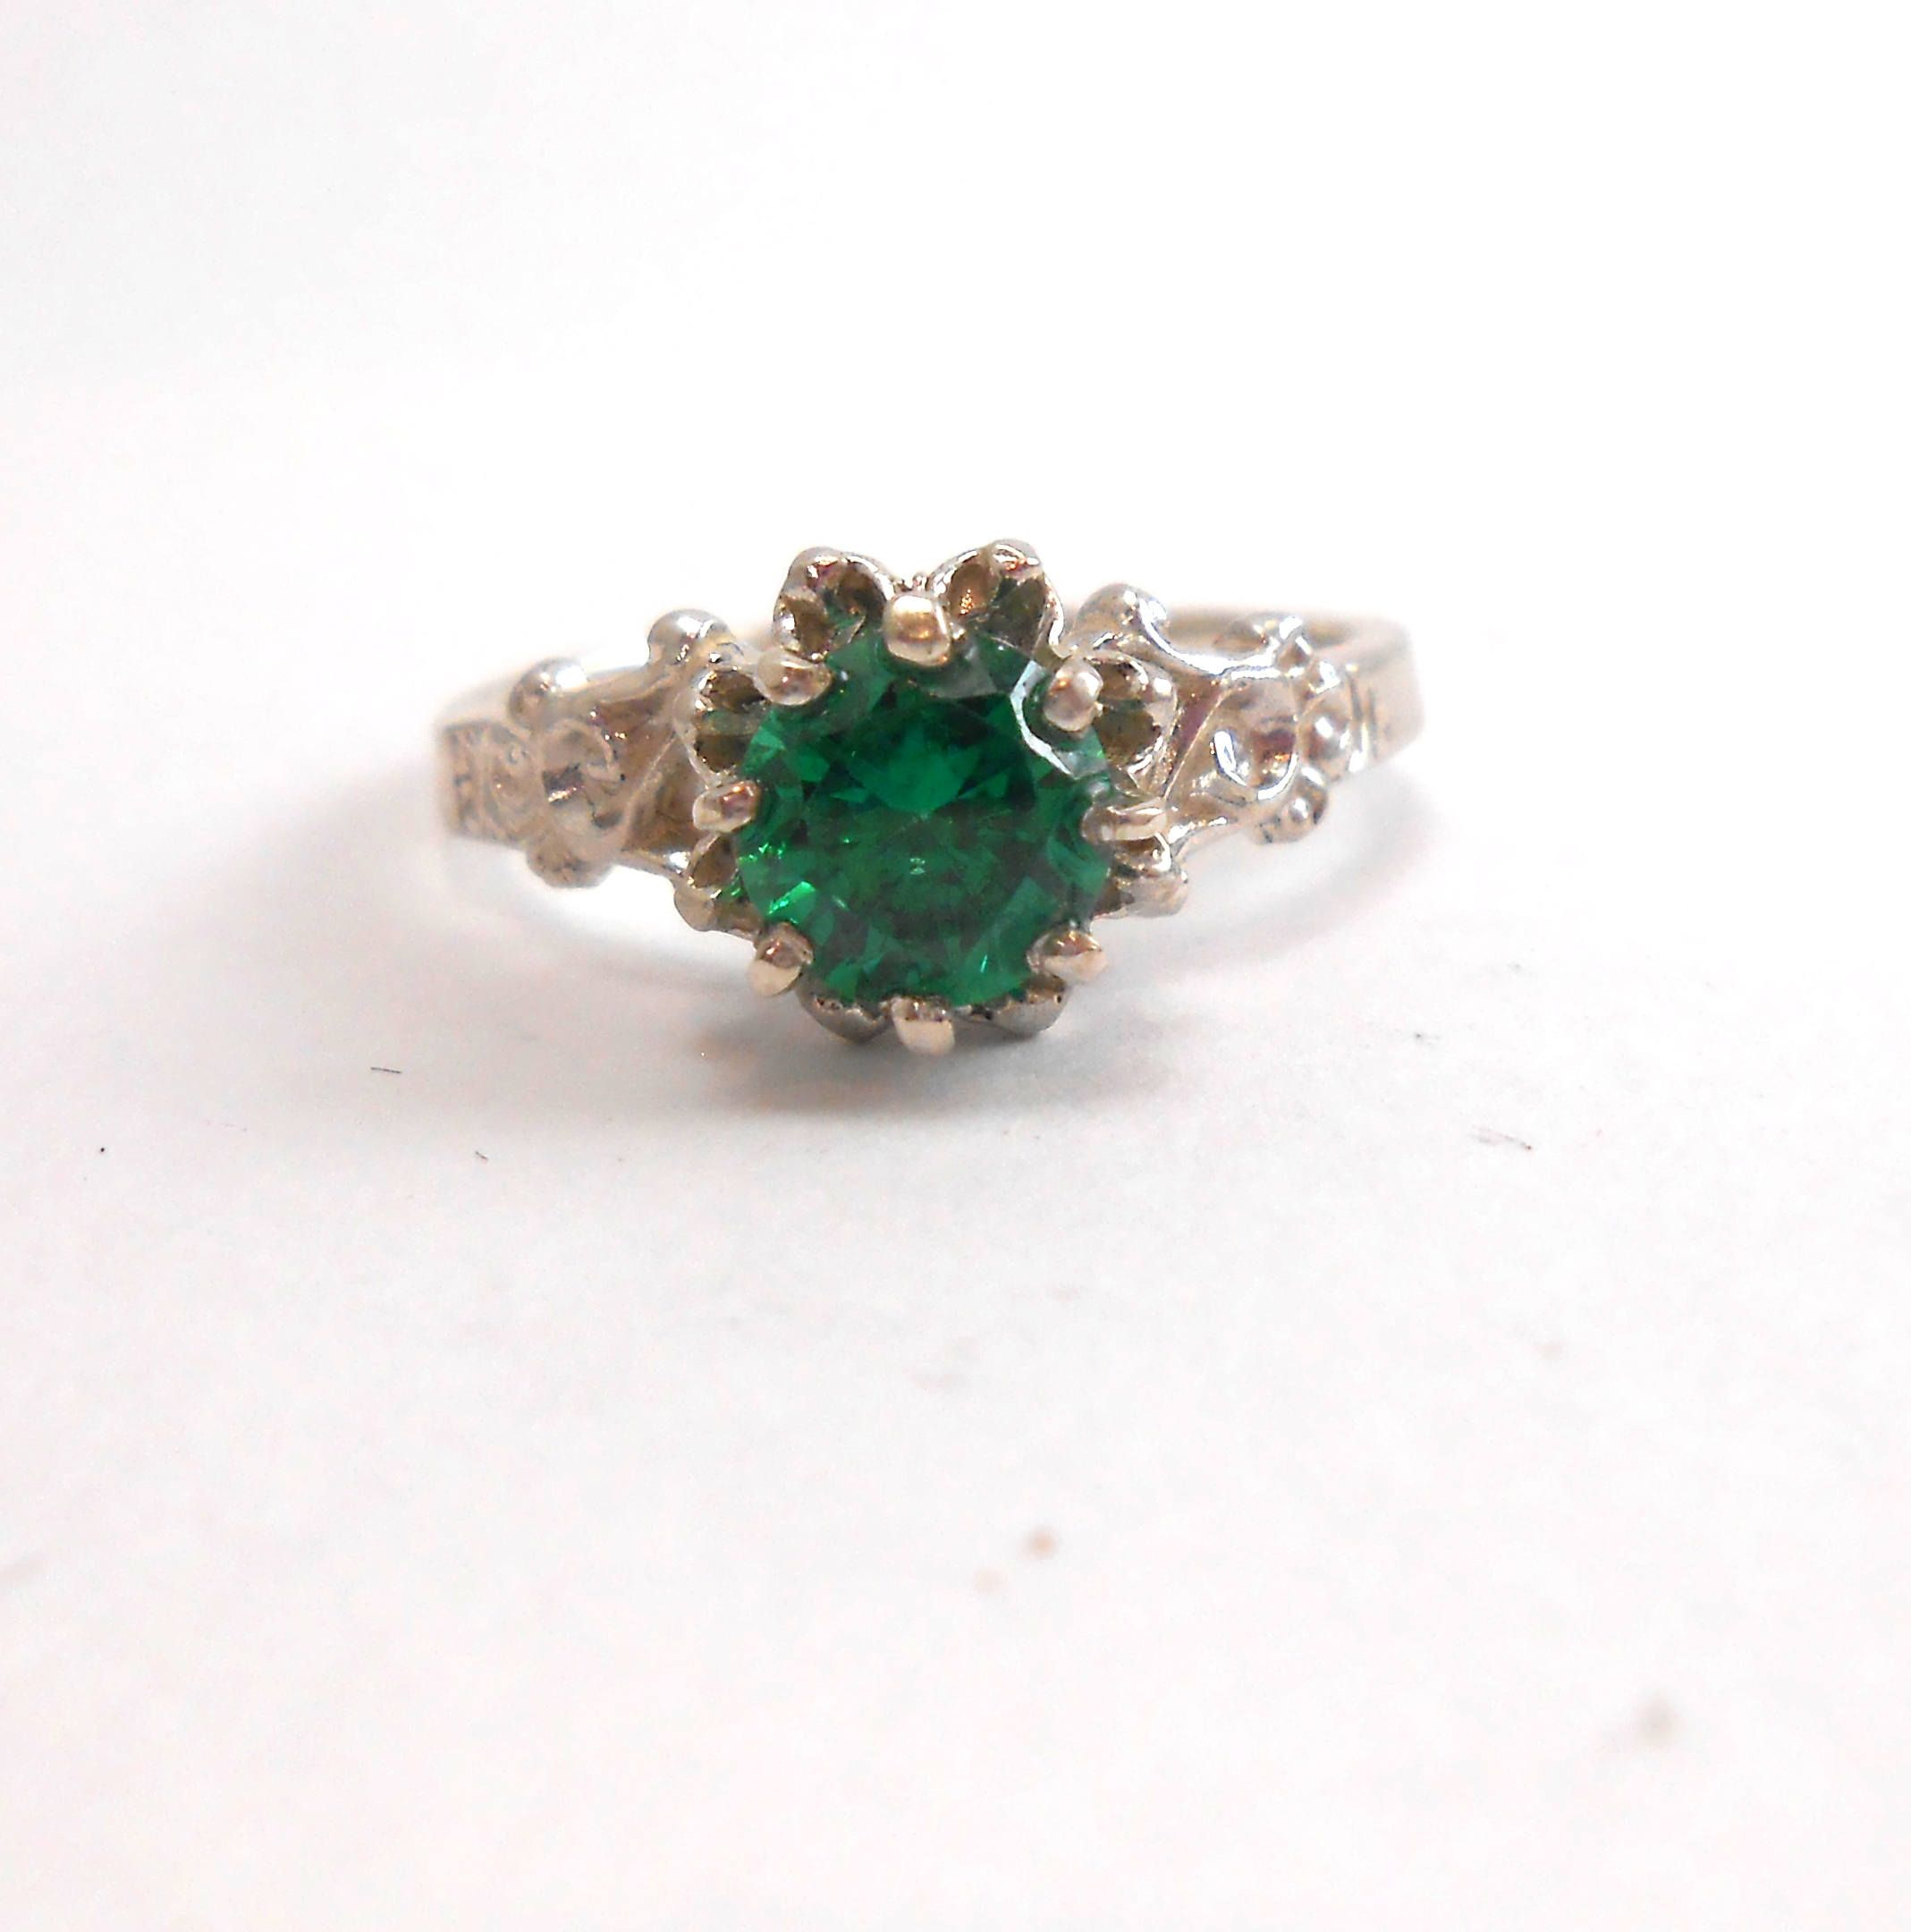 hela constellation gemstone products ring agate rings green